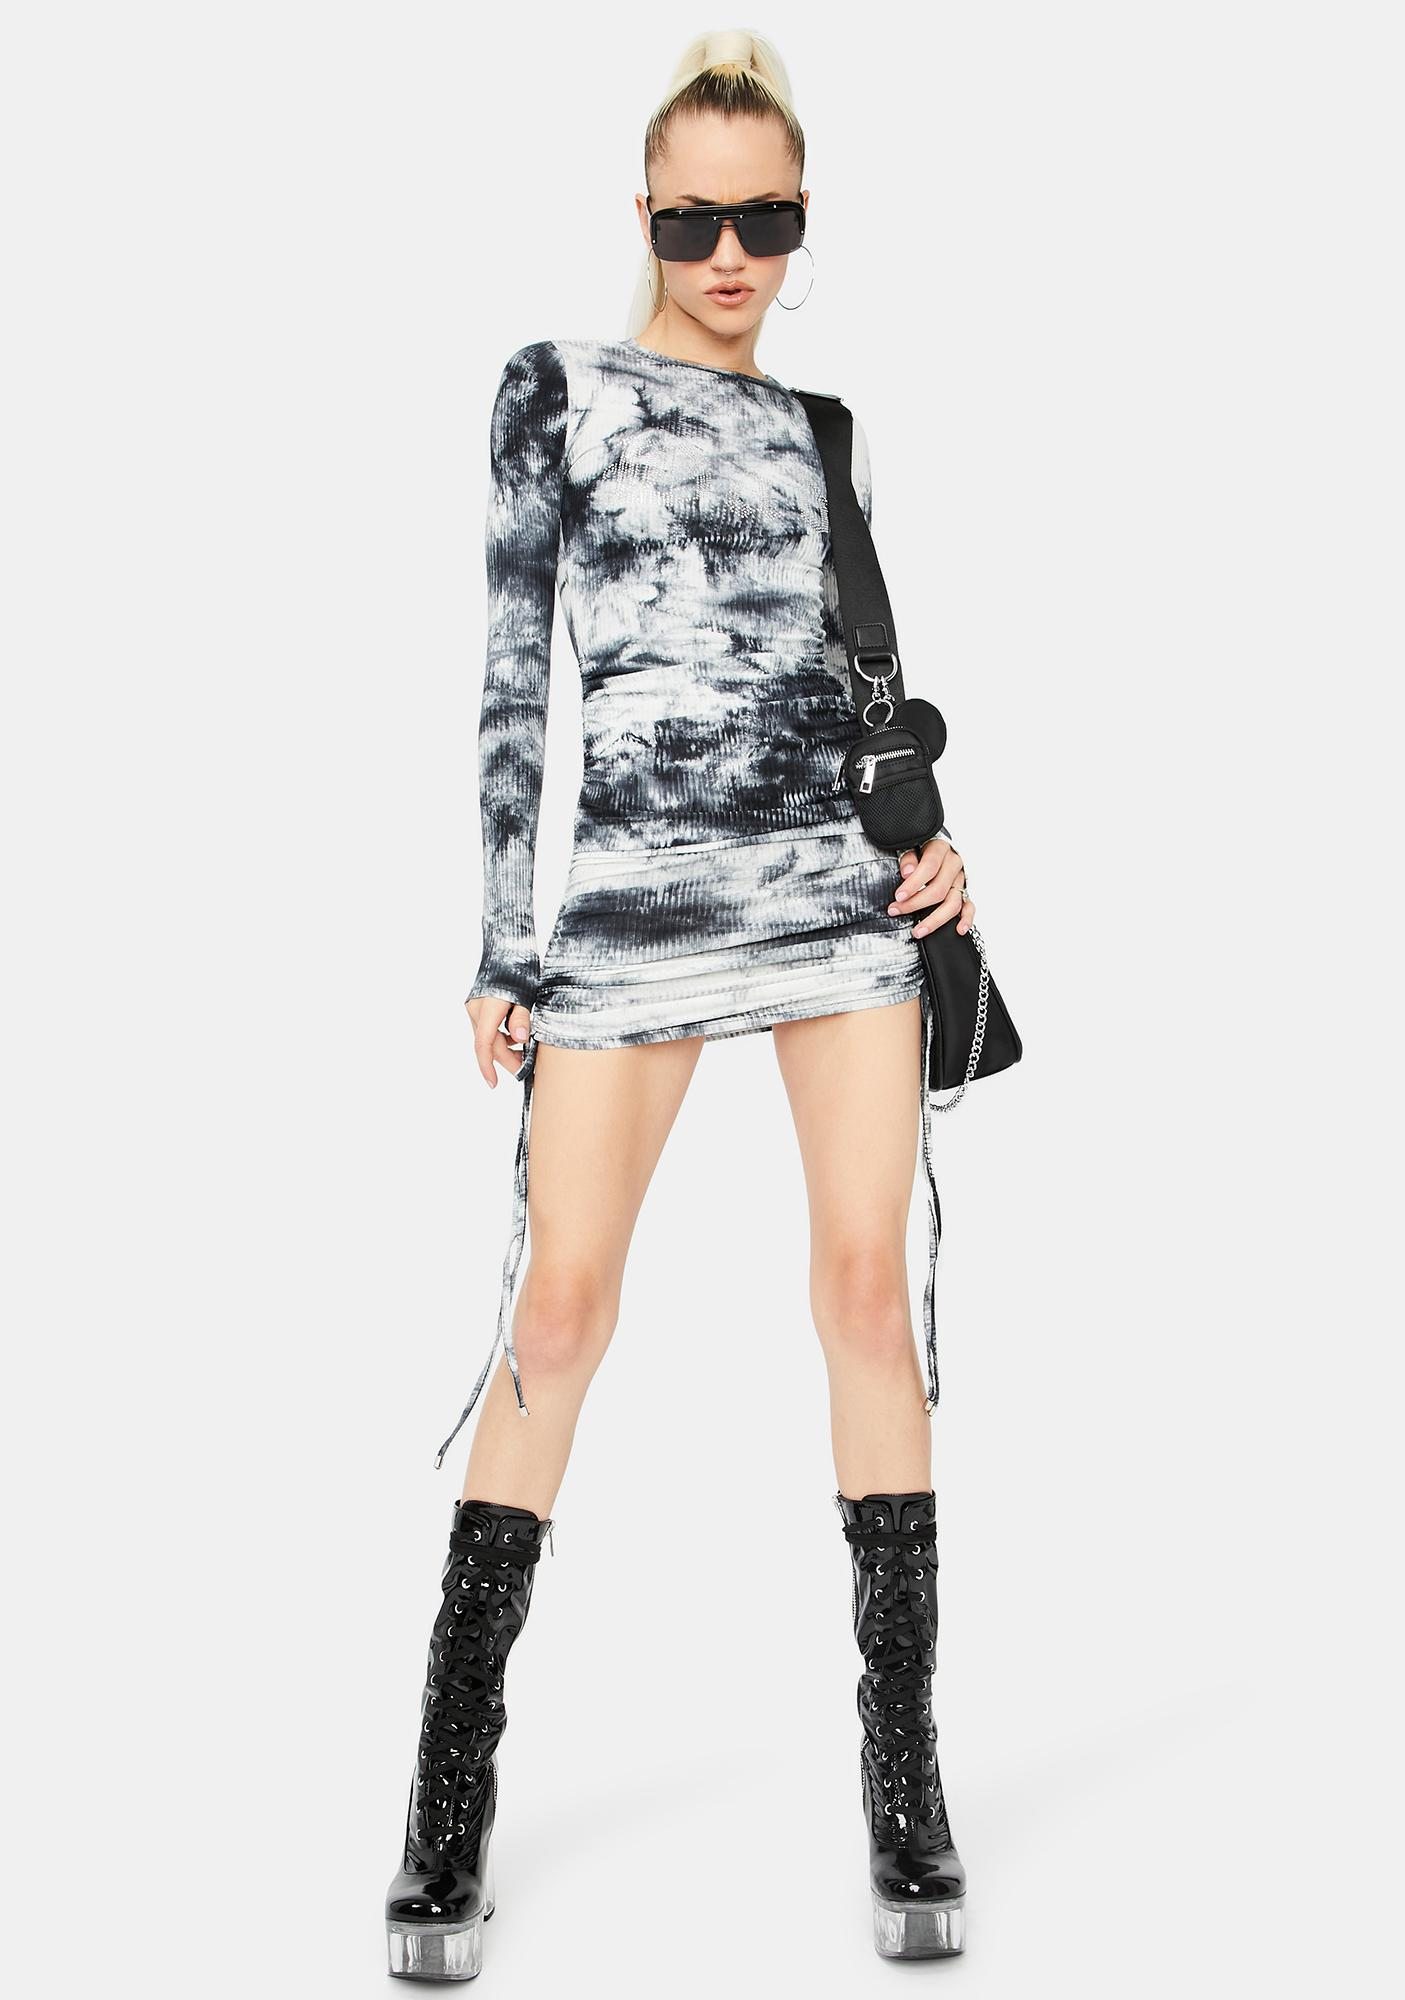 Slick Mind In the Clouds Bodycon Dress